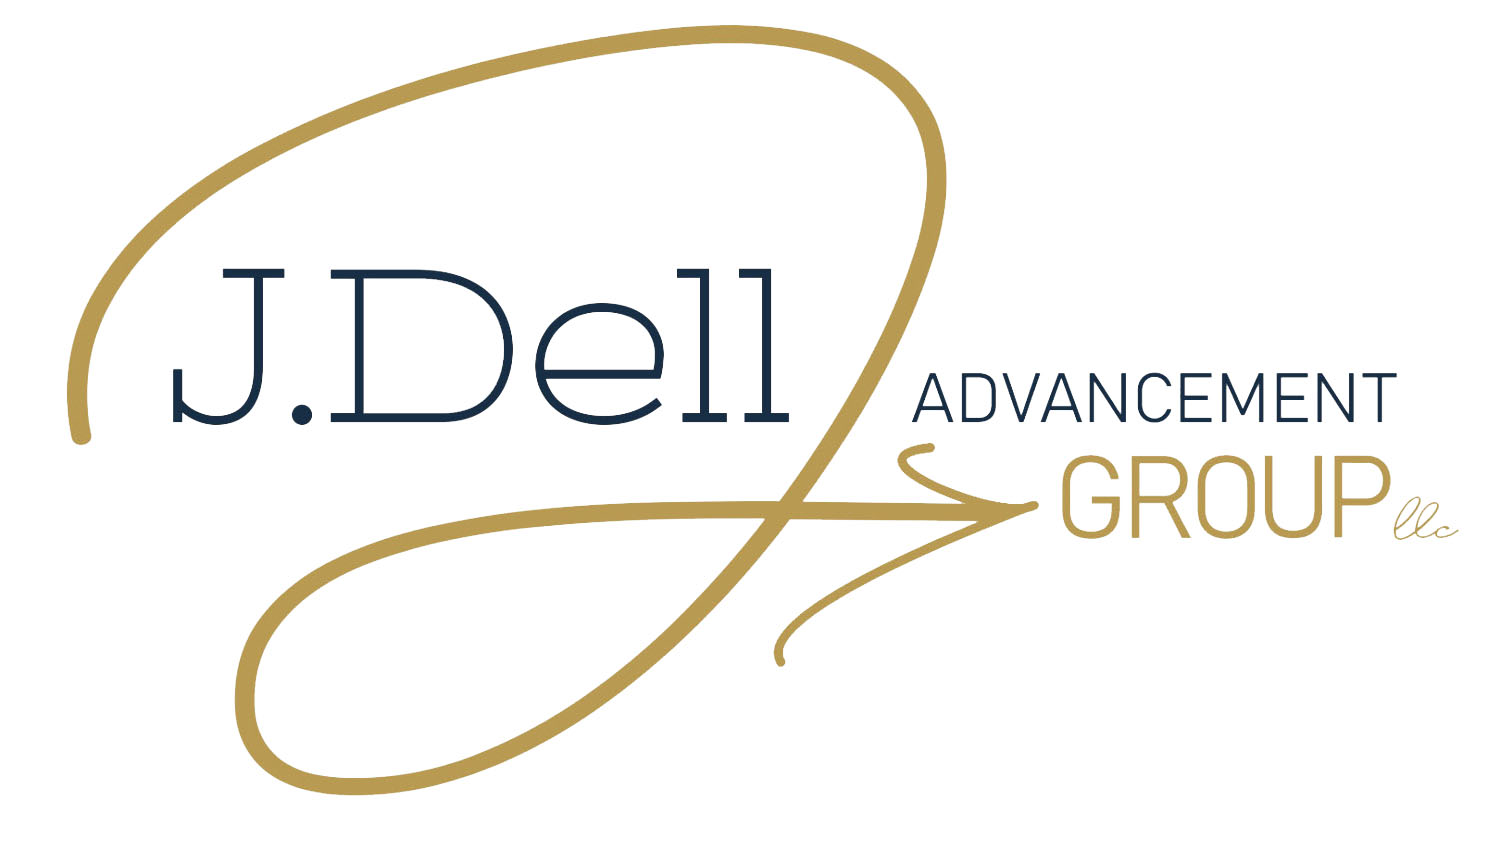 J. Dell Advancement Group